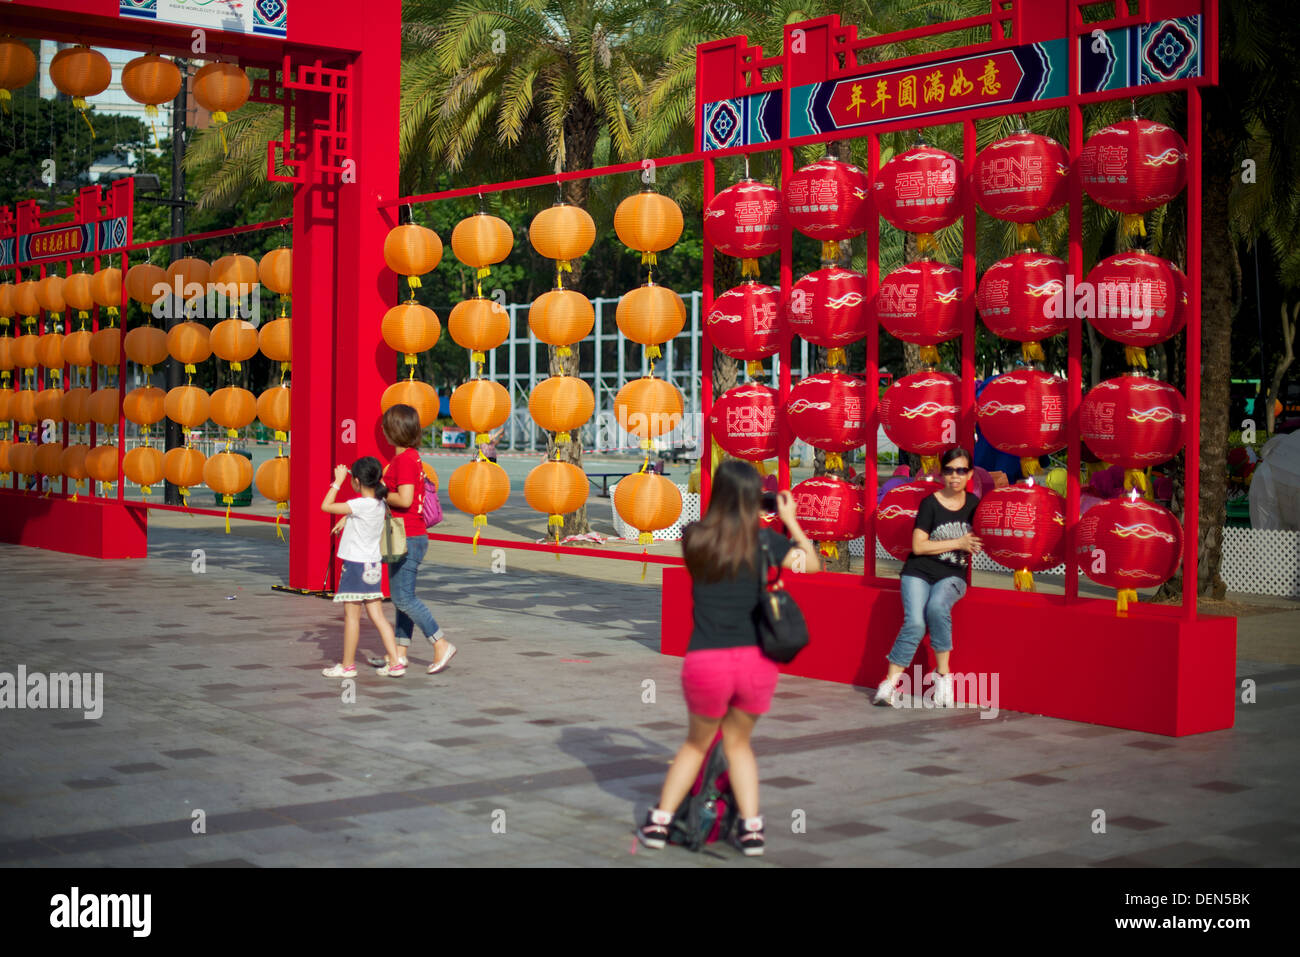 3fe87f1a9 Mid-autumn festival decorations in Victoria Park, Causeway Bay. - Stock  Image